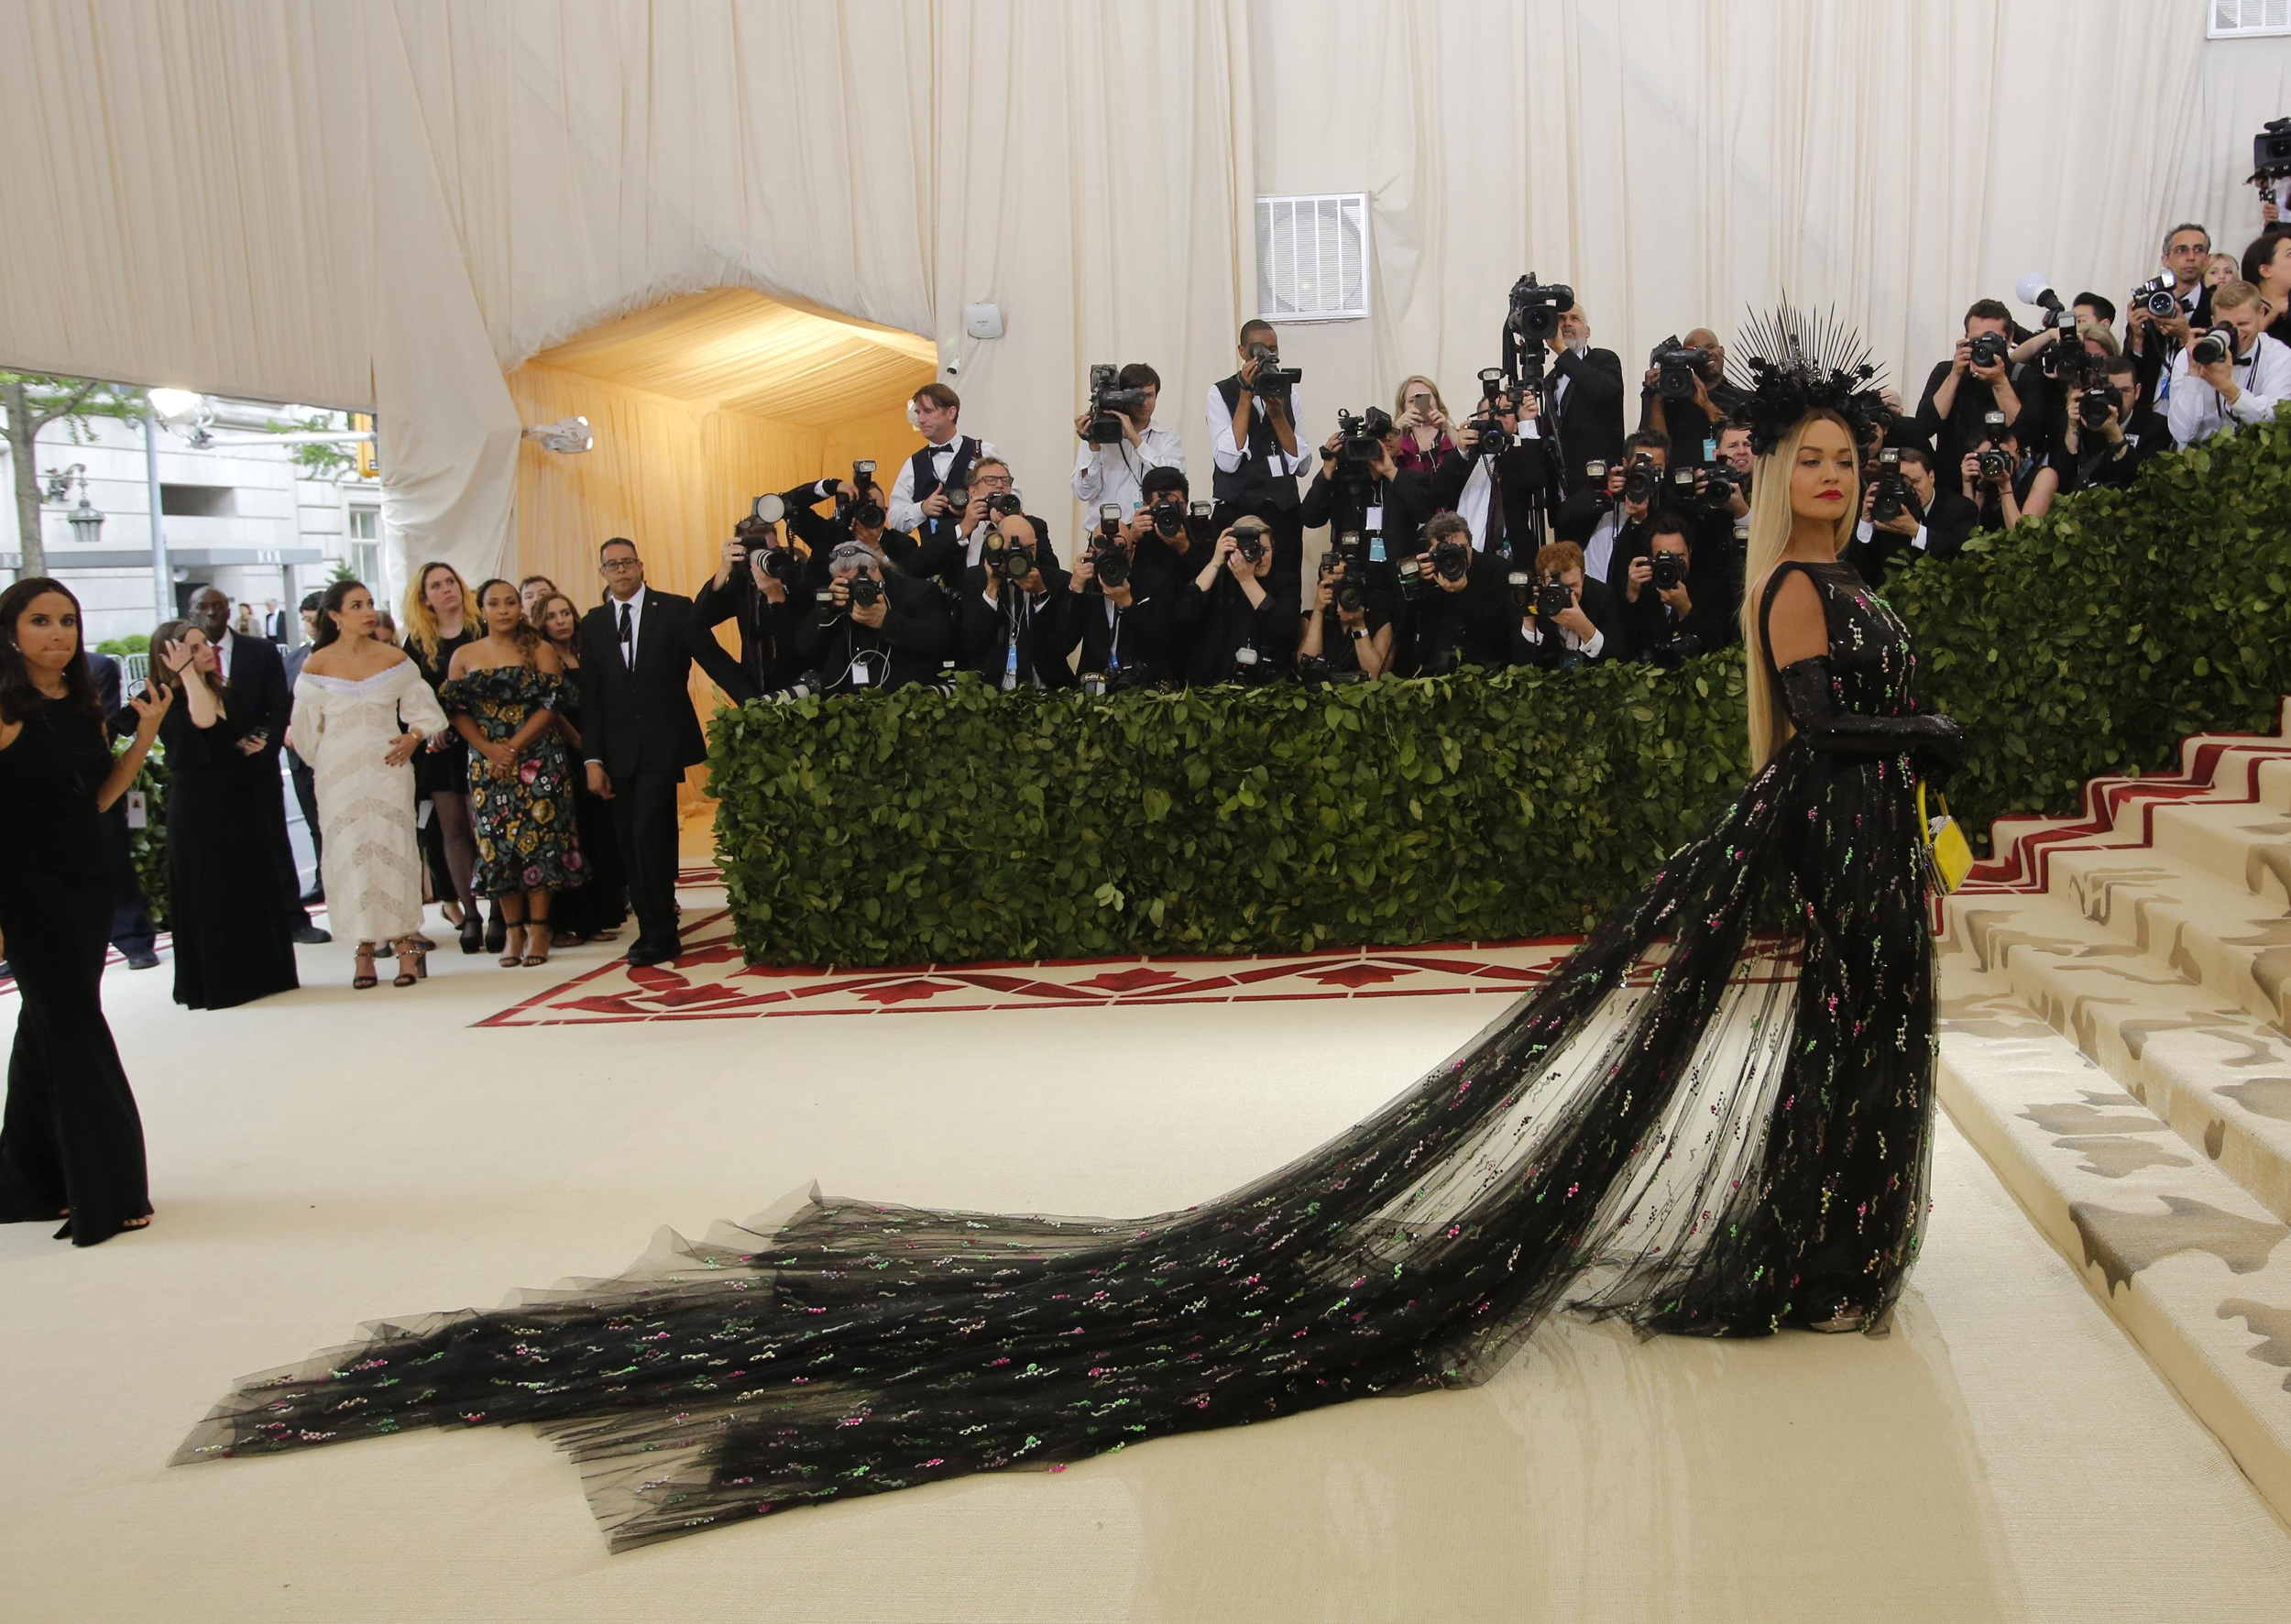 Met-Gala-2018:-See-the-best-heavenly-looks-on-the-Catholic-themed-red-carpet